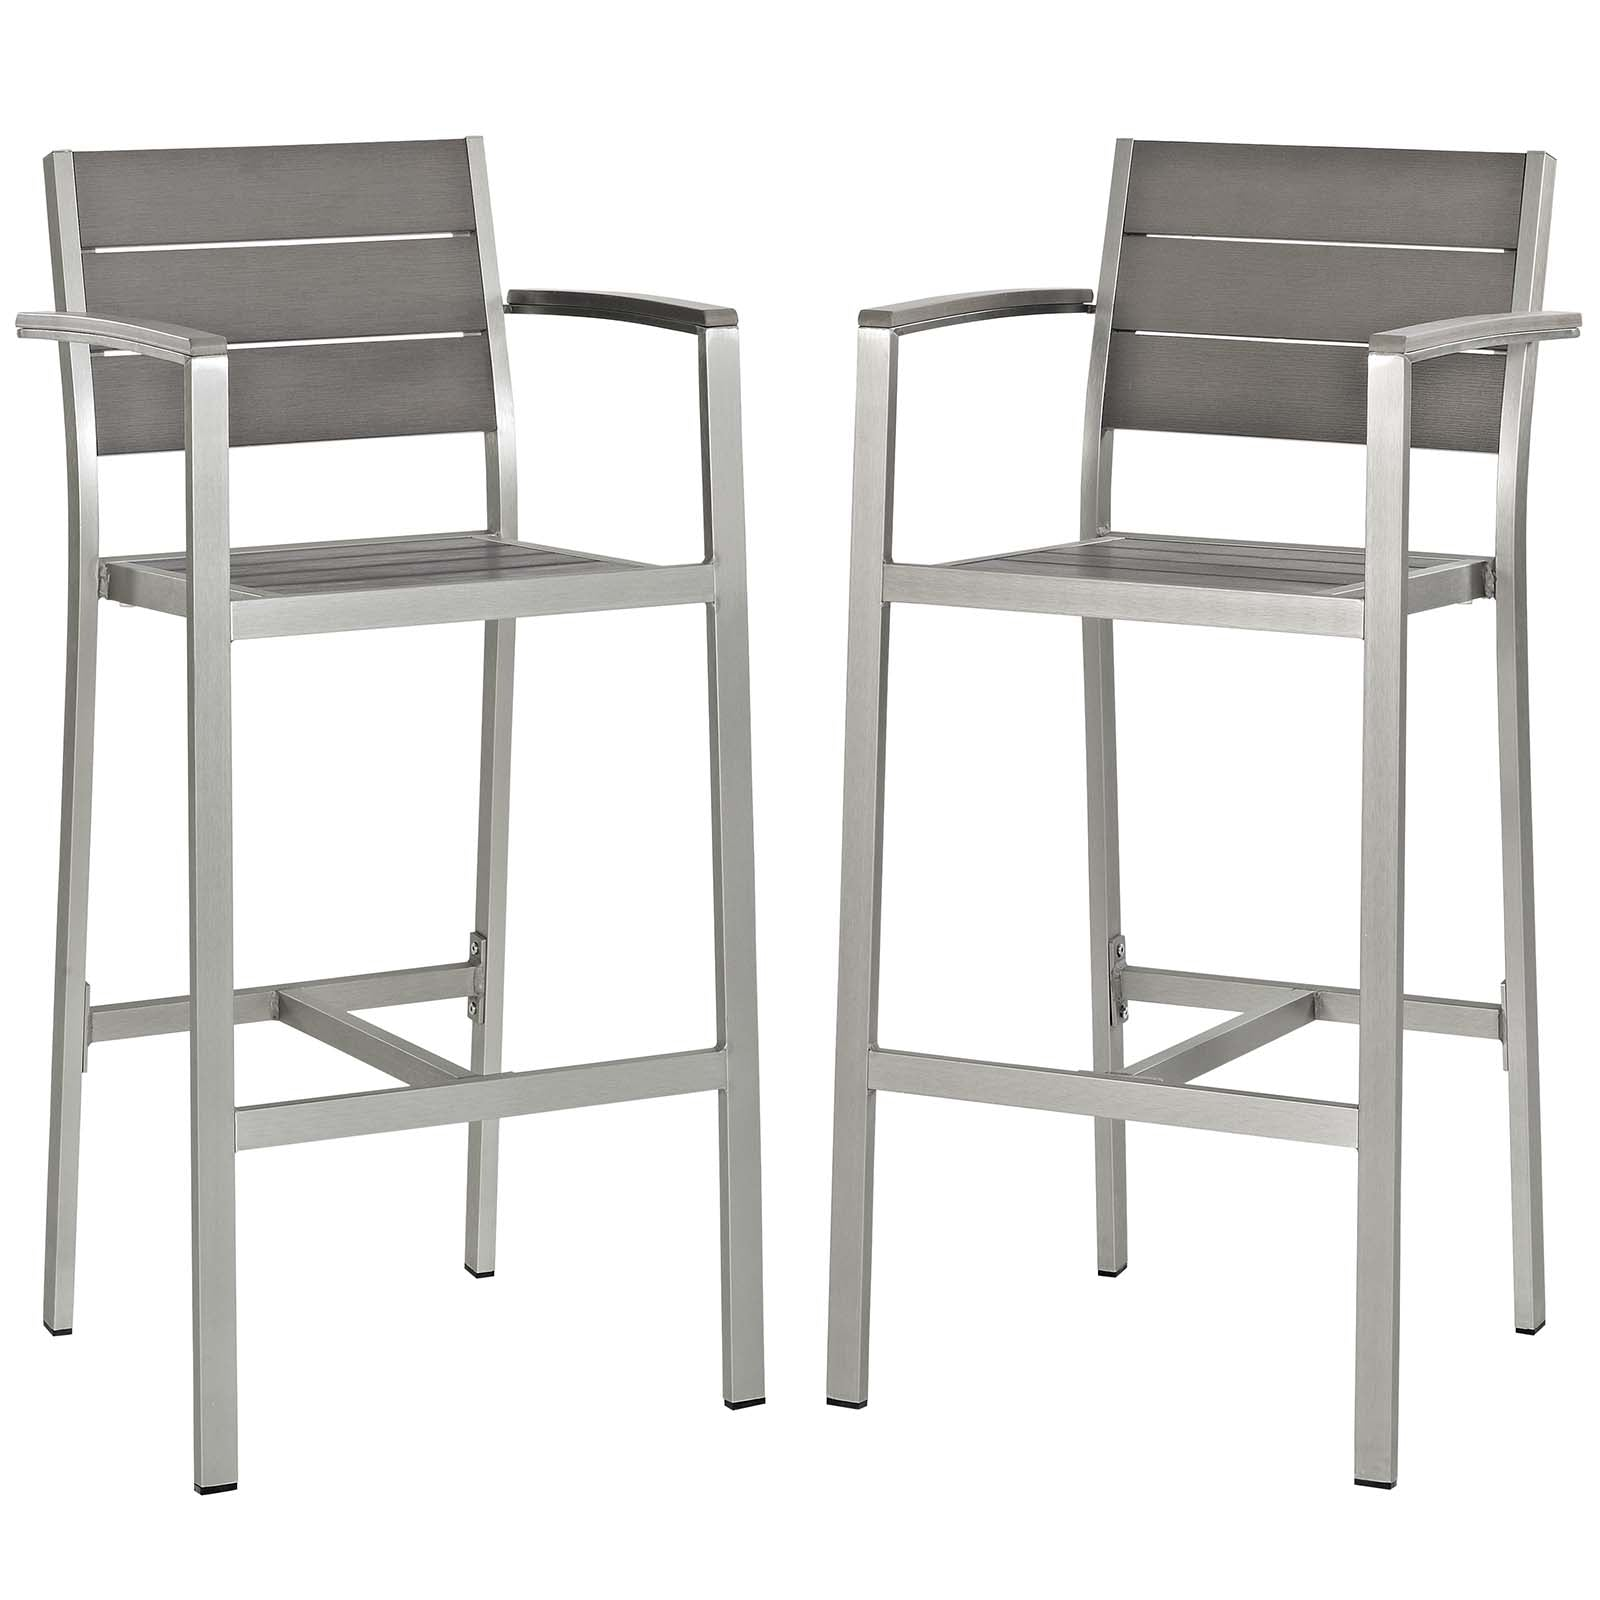 Shore Bar Stool Outdoor Patio Aluminum Set of 2